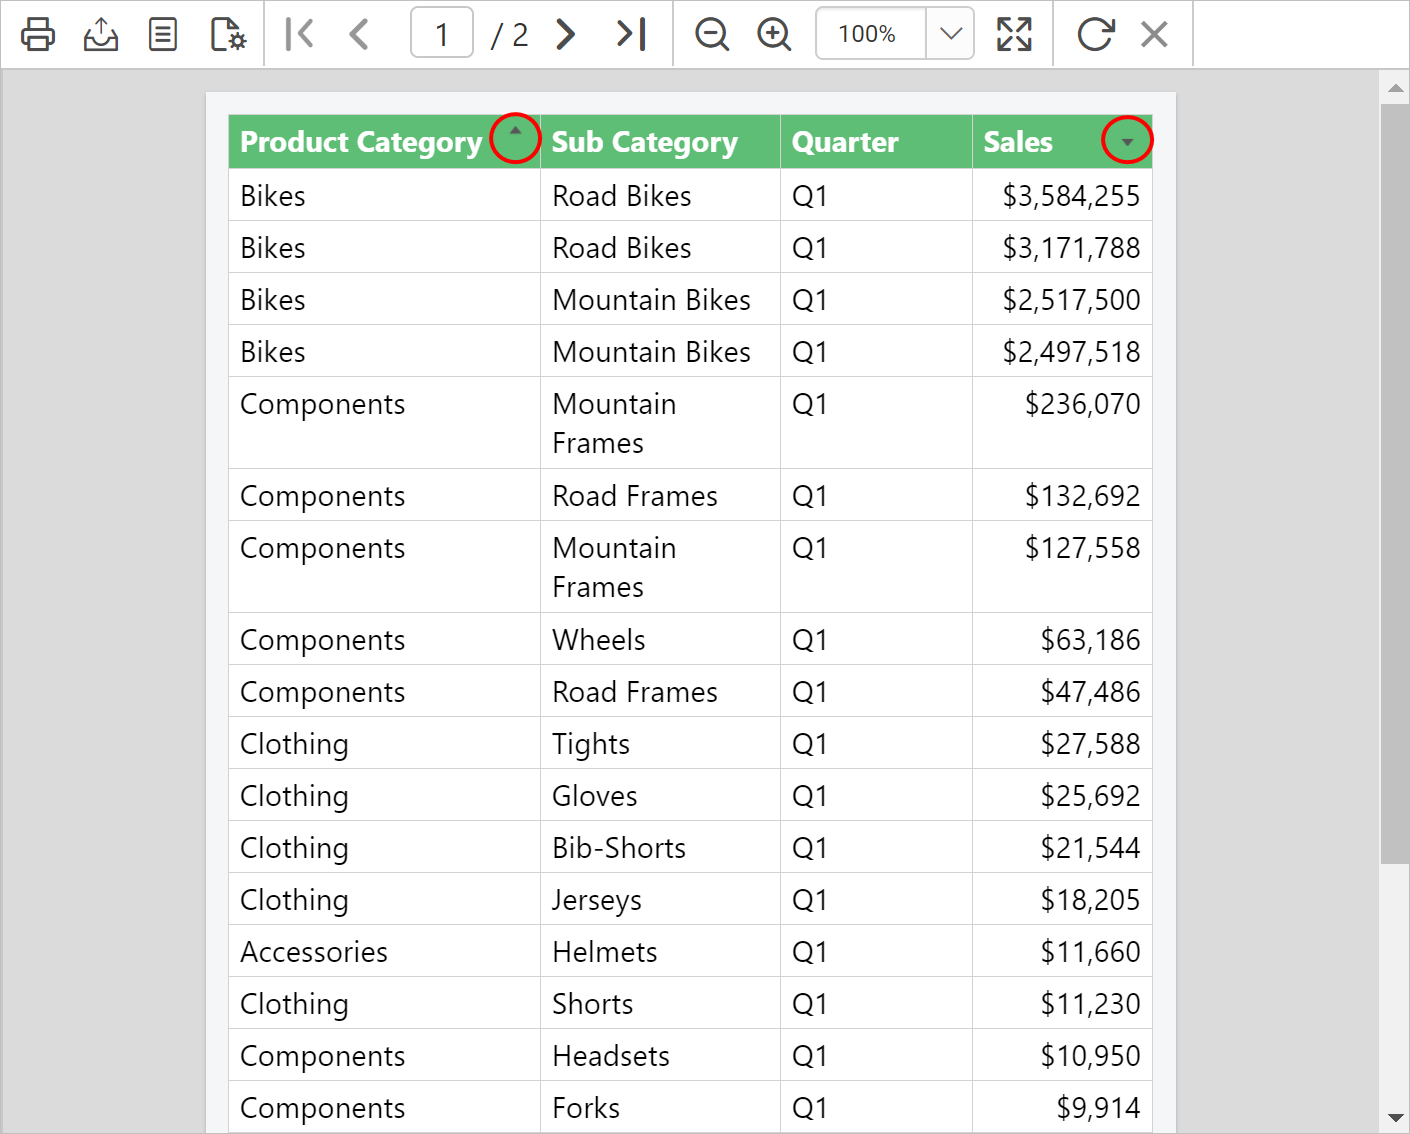 Interactive sorting enabled for sales column